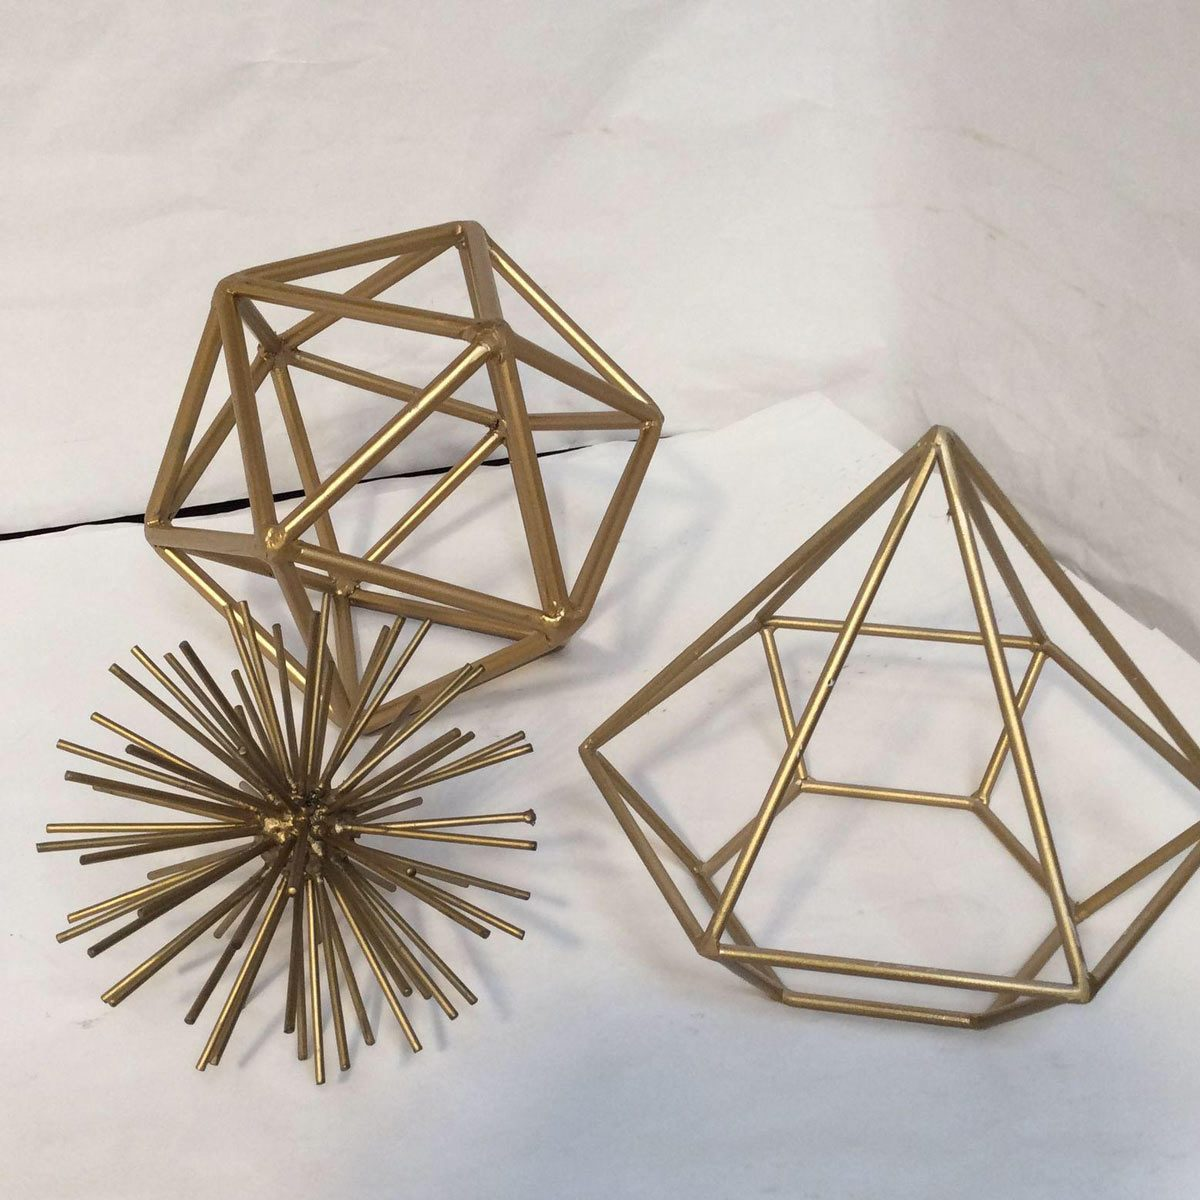 gold metal geometric shapes